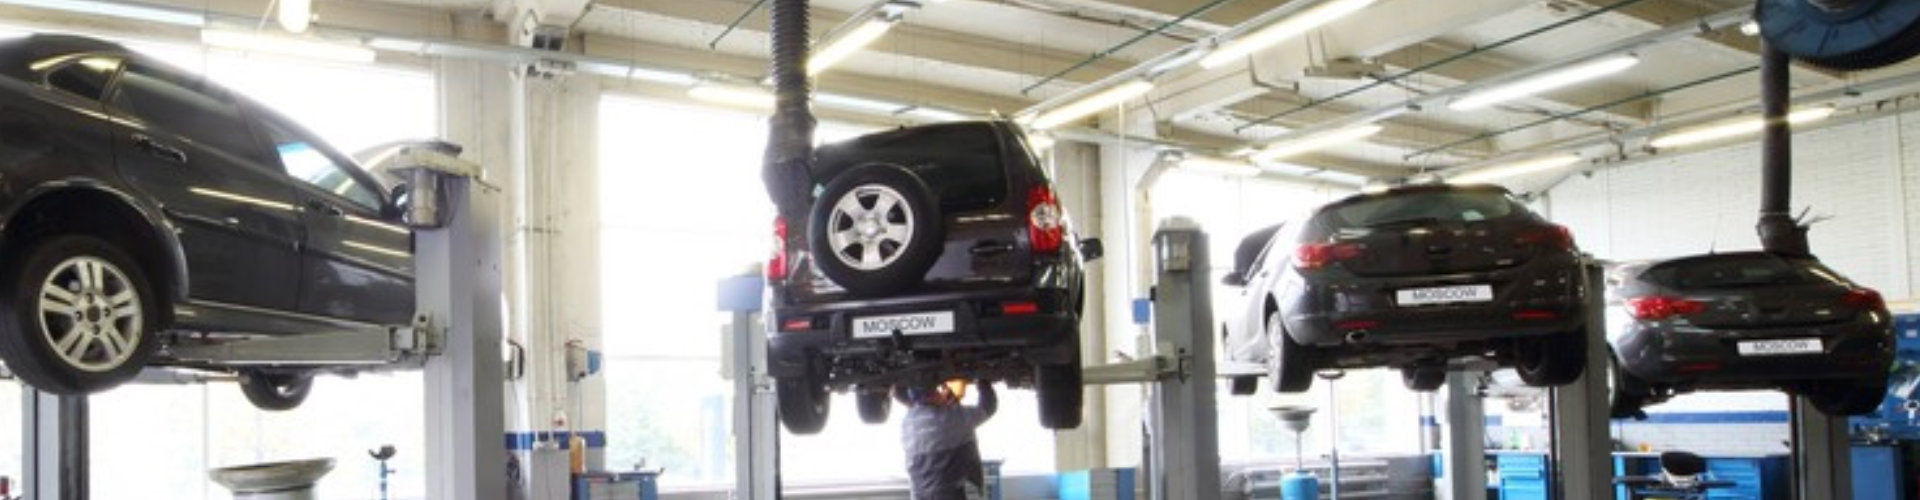 four black cars on lifts in small service station and two men repair one car